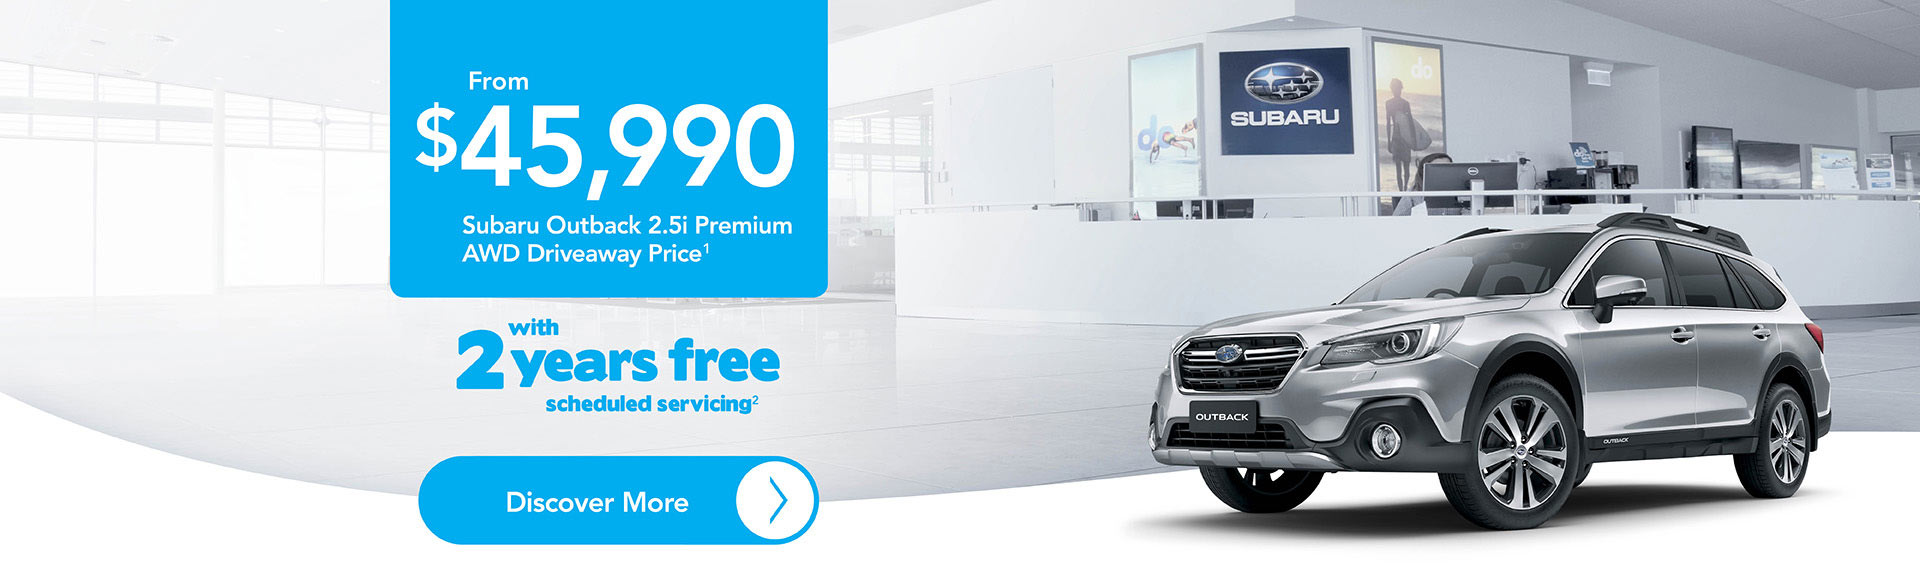 Subaru Outback Premium Latest Offers